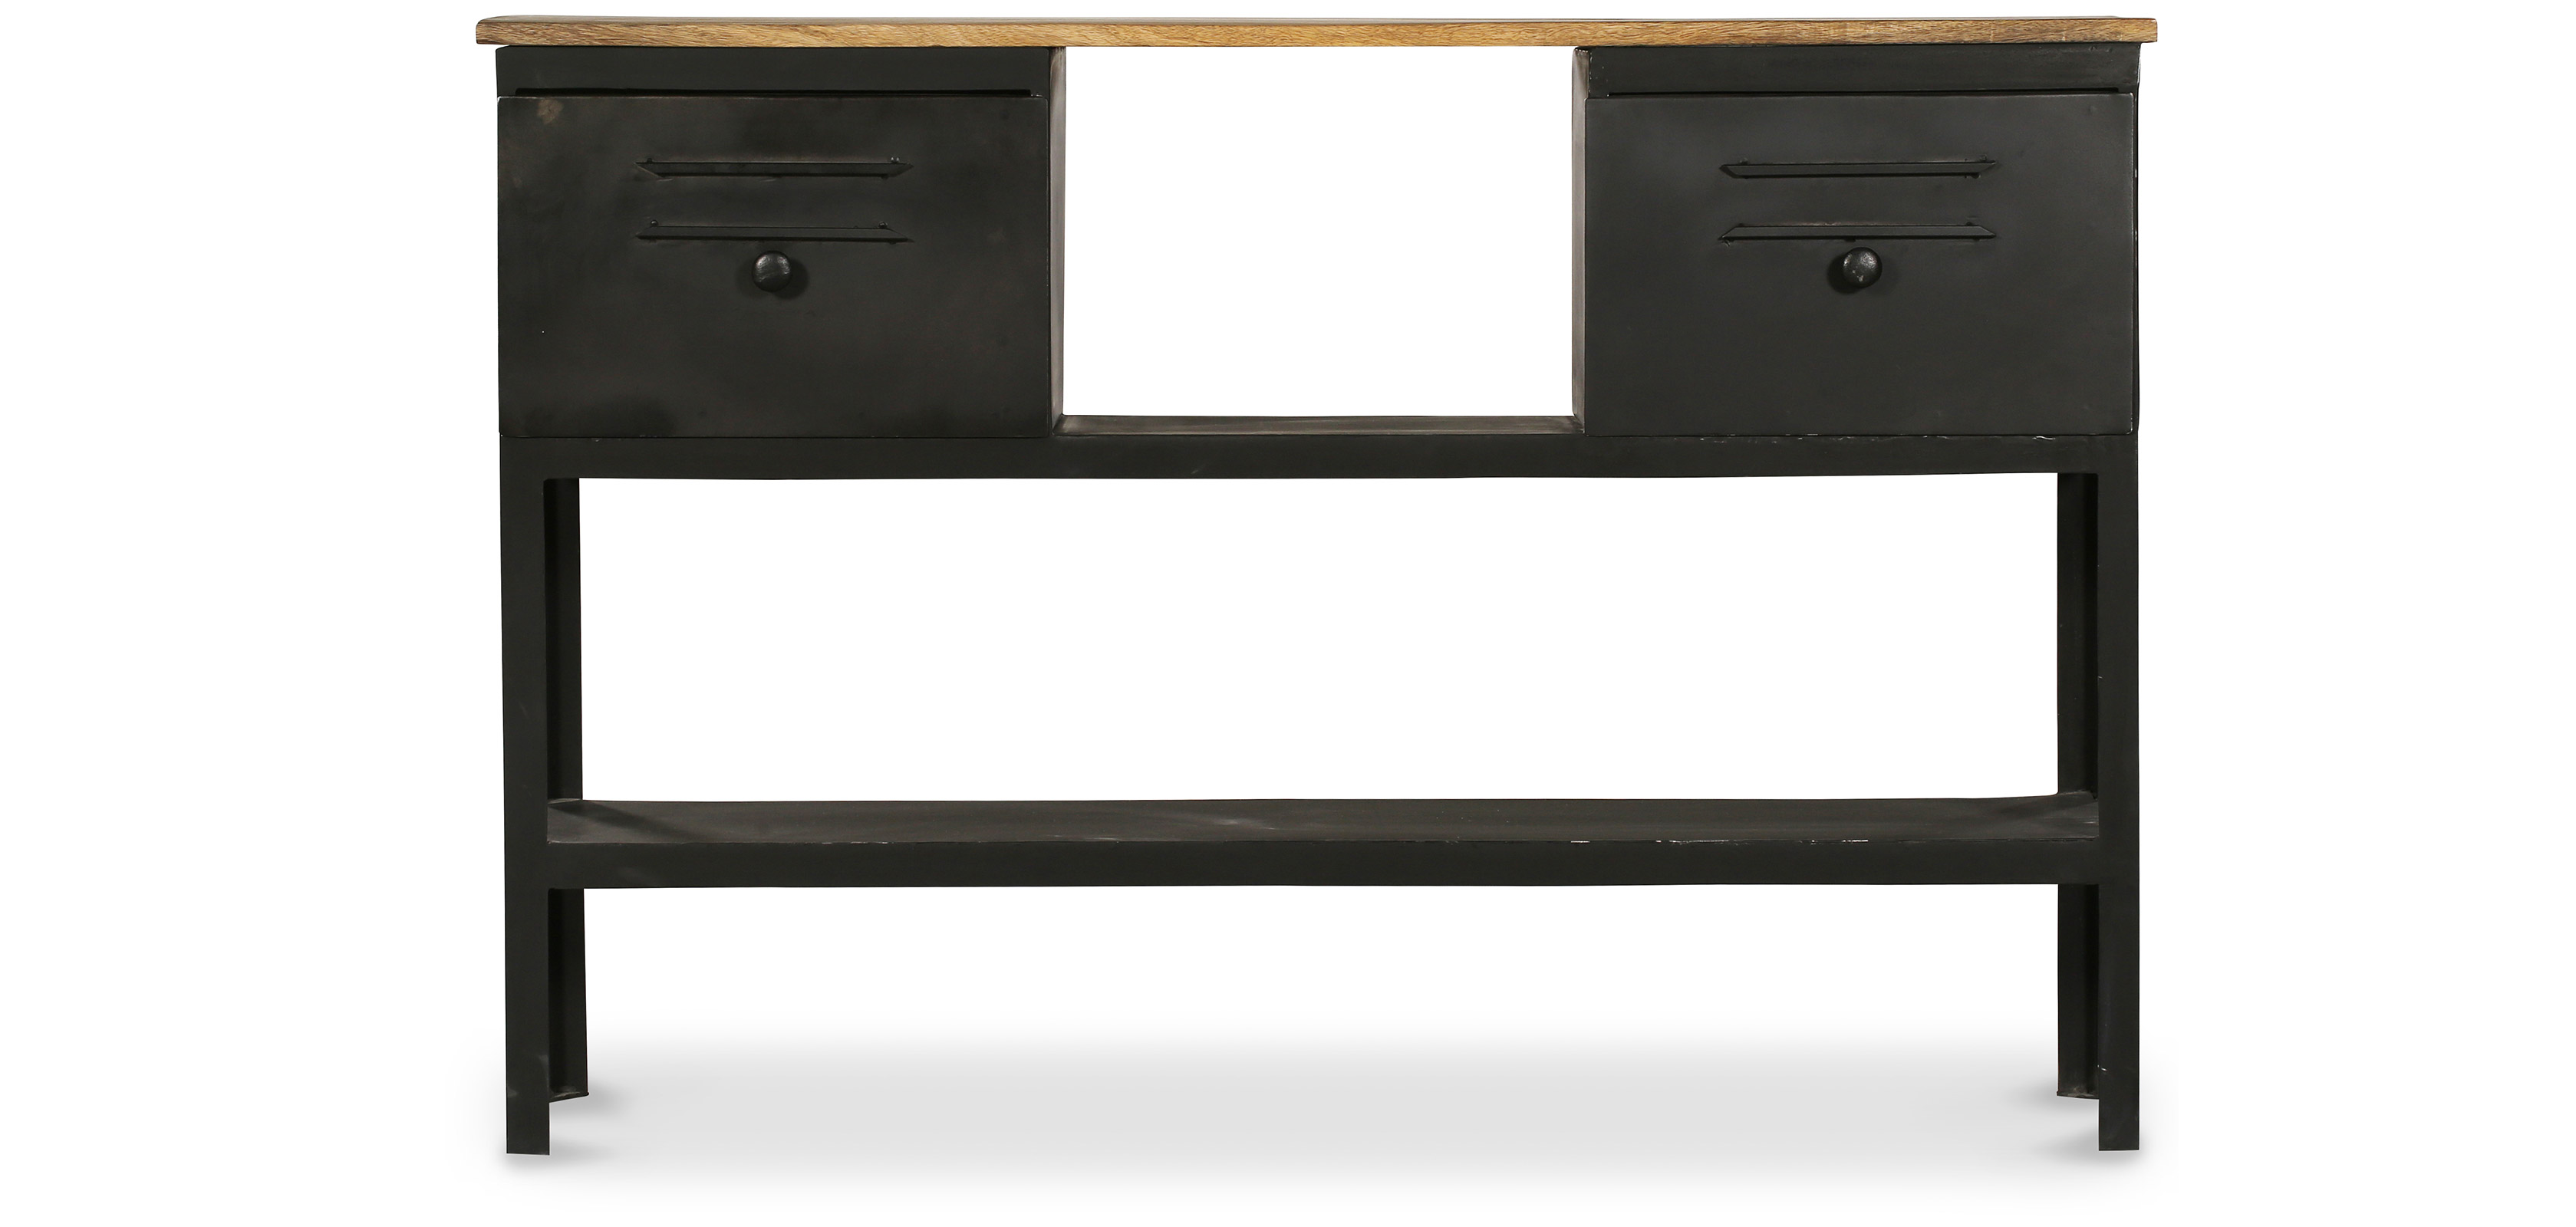 bureau console pas cher maison design. Black Bedroom Furniture Sets. Home Design Ideas